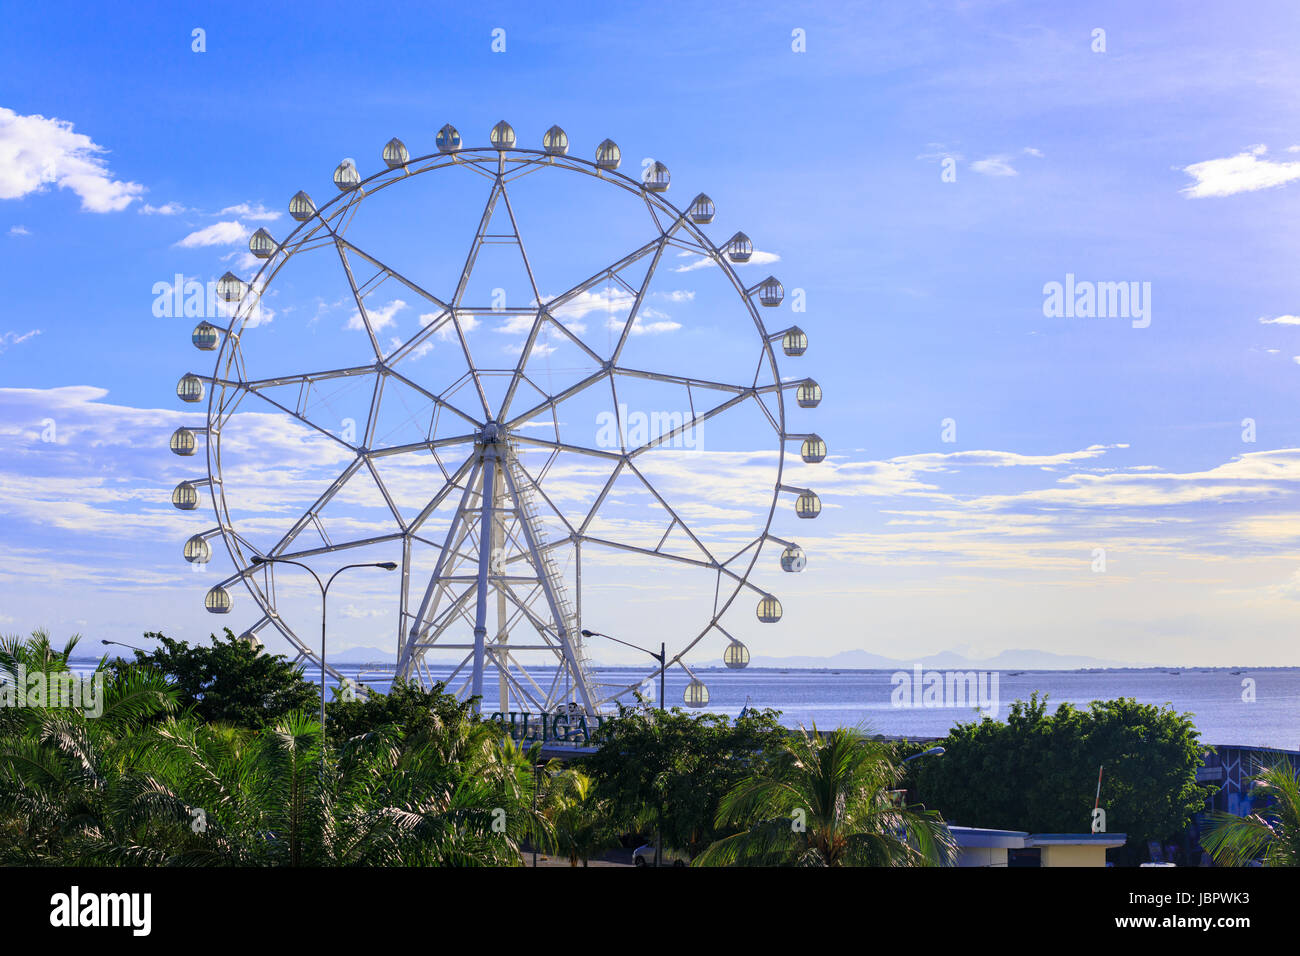 Oct 29, 2016 Ferris wheel at the Mall of Asia, in Pasay, Metro Manila, Philippines - Stock Image